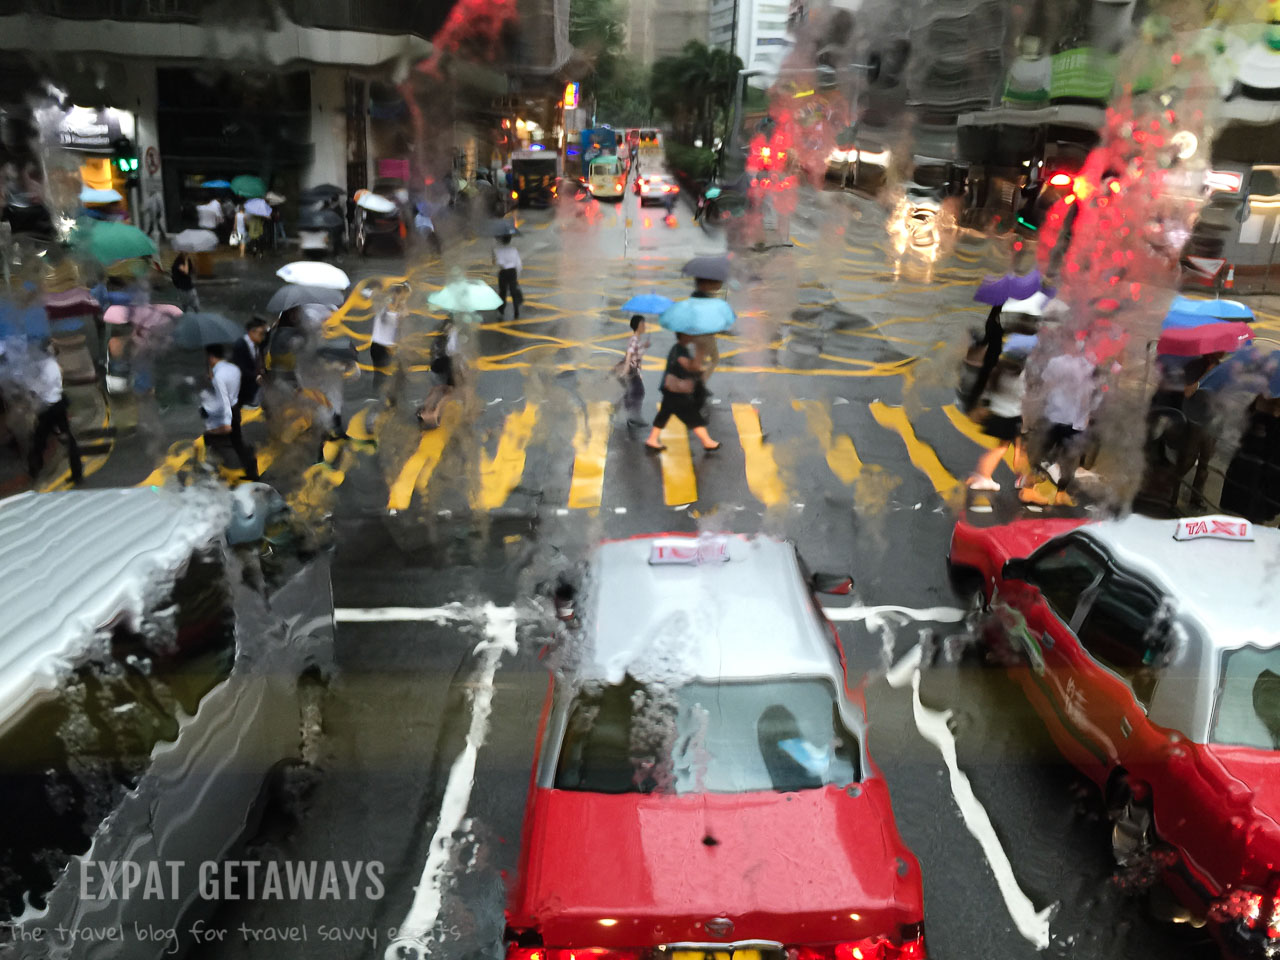 When it rains it pours! Heavy downpours are common in the Hong Kong wet season or summer. Expat Getaways, First Time Hong Kong Survival Guide - Weather and Seasons.